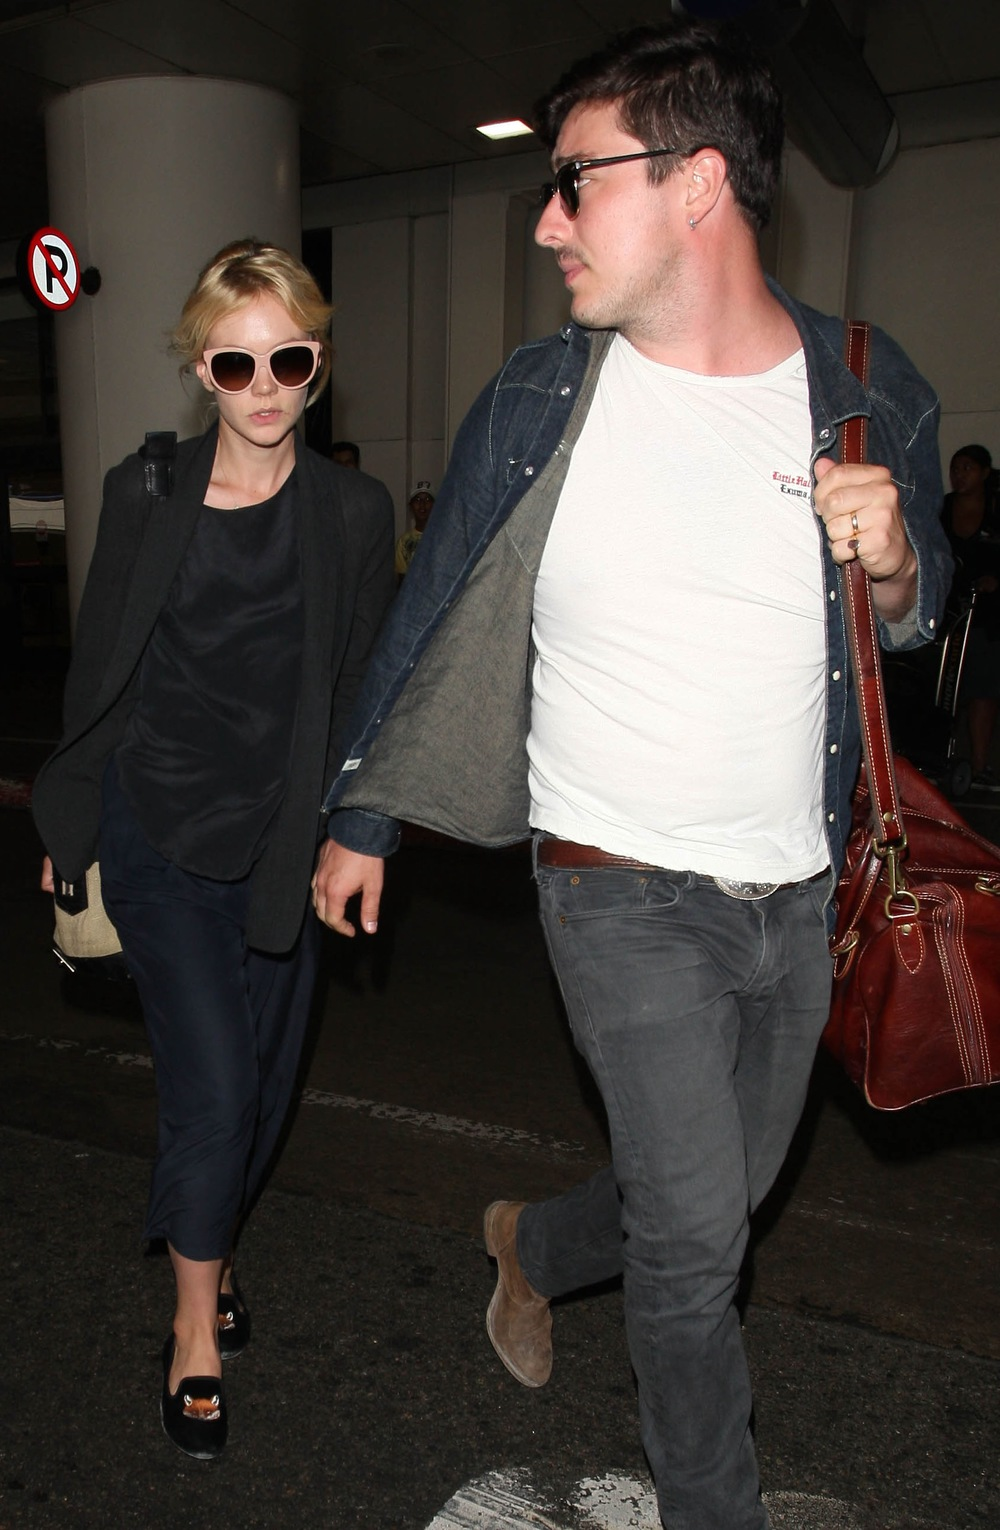 Carey-Mulligan-Arrives-LAX-Husband-Marcus-Mumford-Los-Angeles-CA-08232012-5.jpg